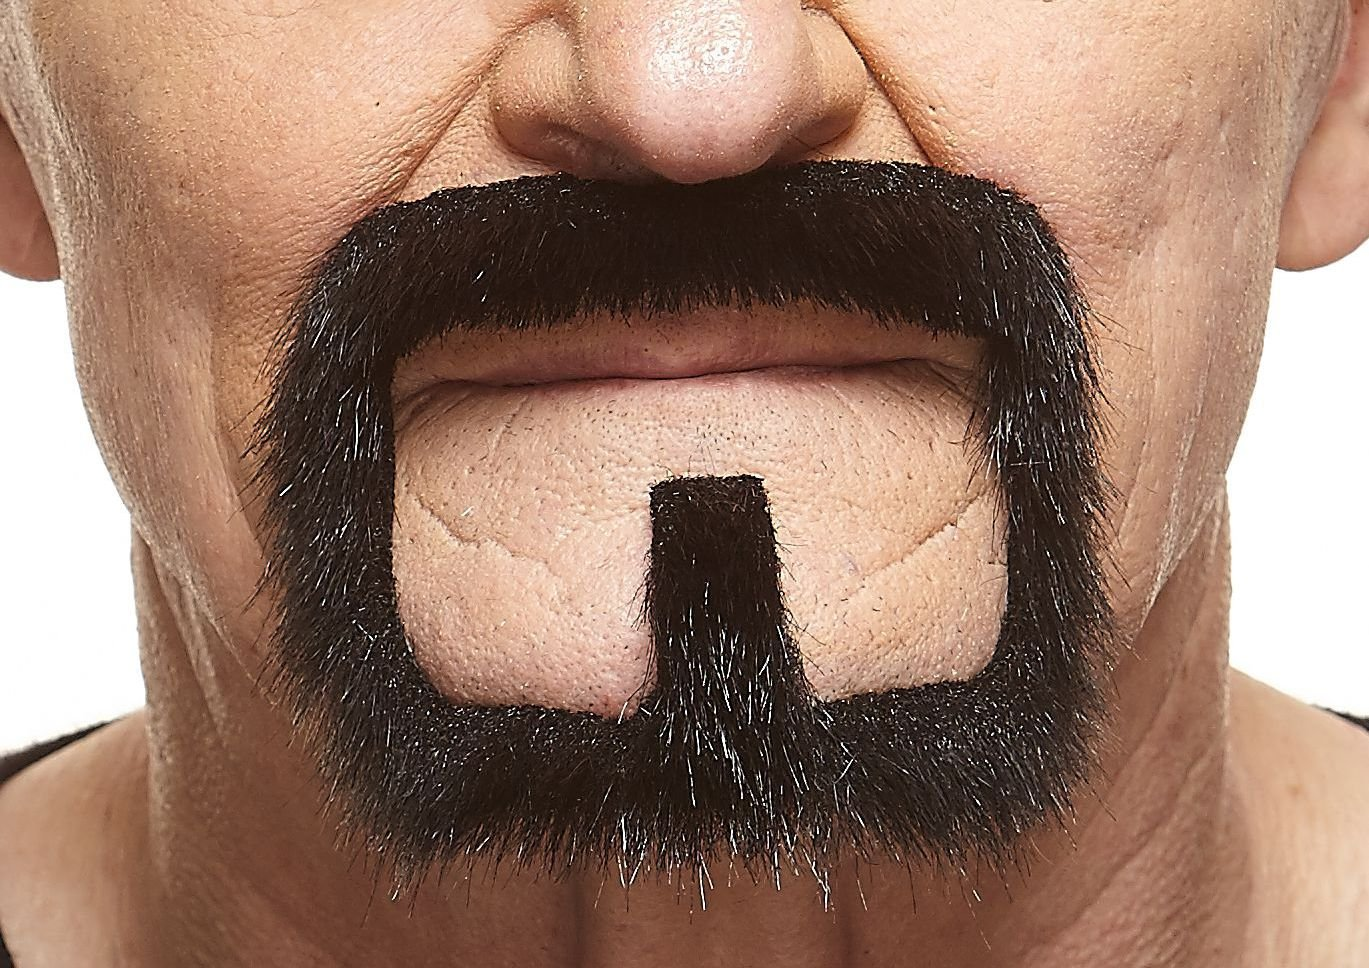 Mustaches Self Adhesive, Novelty, Fake Van Dyke Beard, Black Lustrous Color